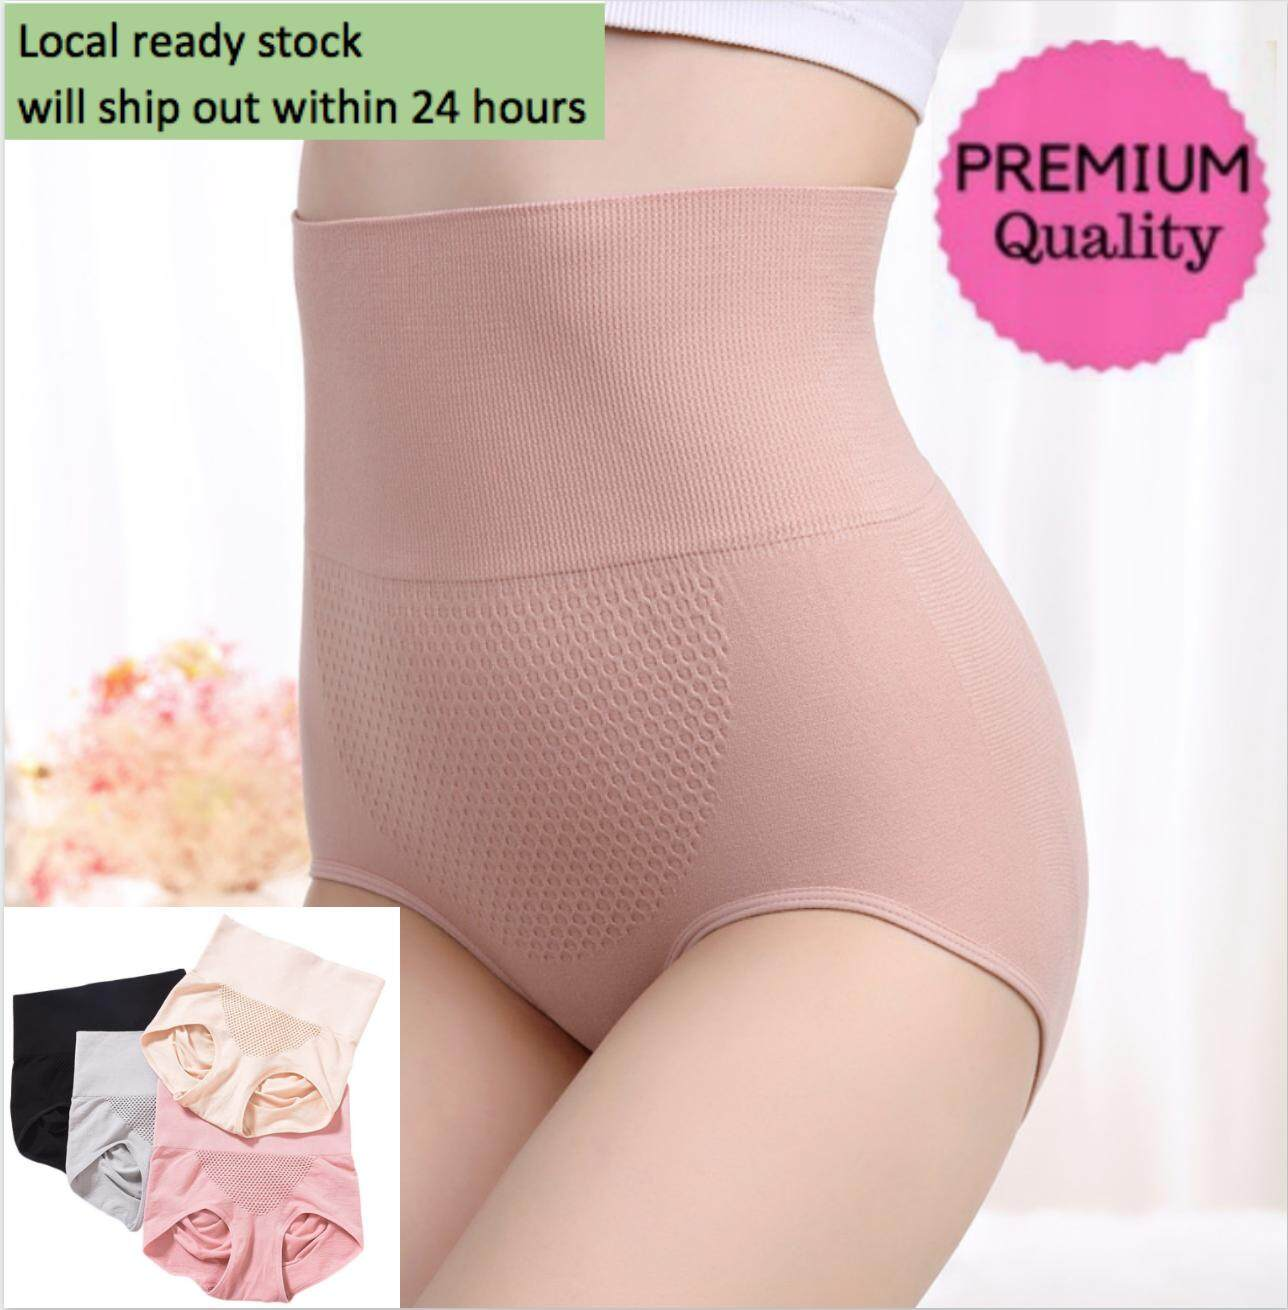 f5eaee33b7a Ready Stock High Waist Flatten Tummy Hip Lifting Women Uterus Warming  Underwear Seamless Panties shapewear girdle